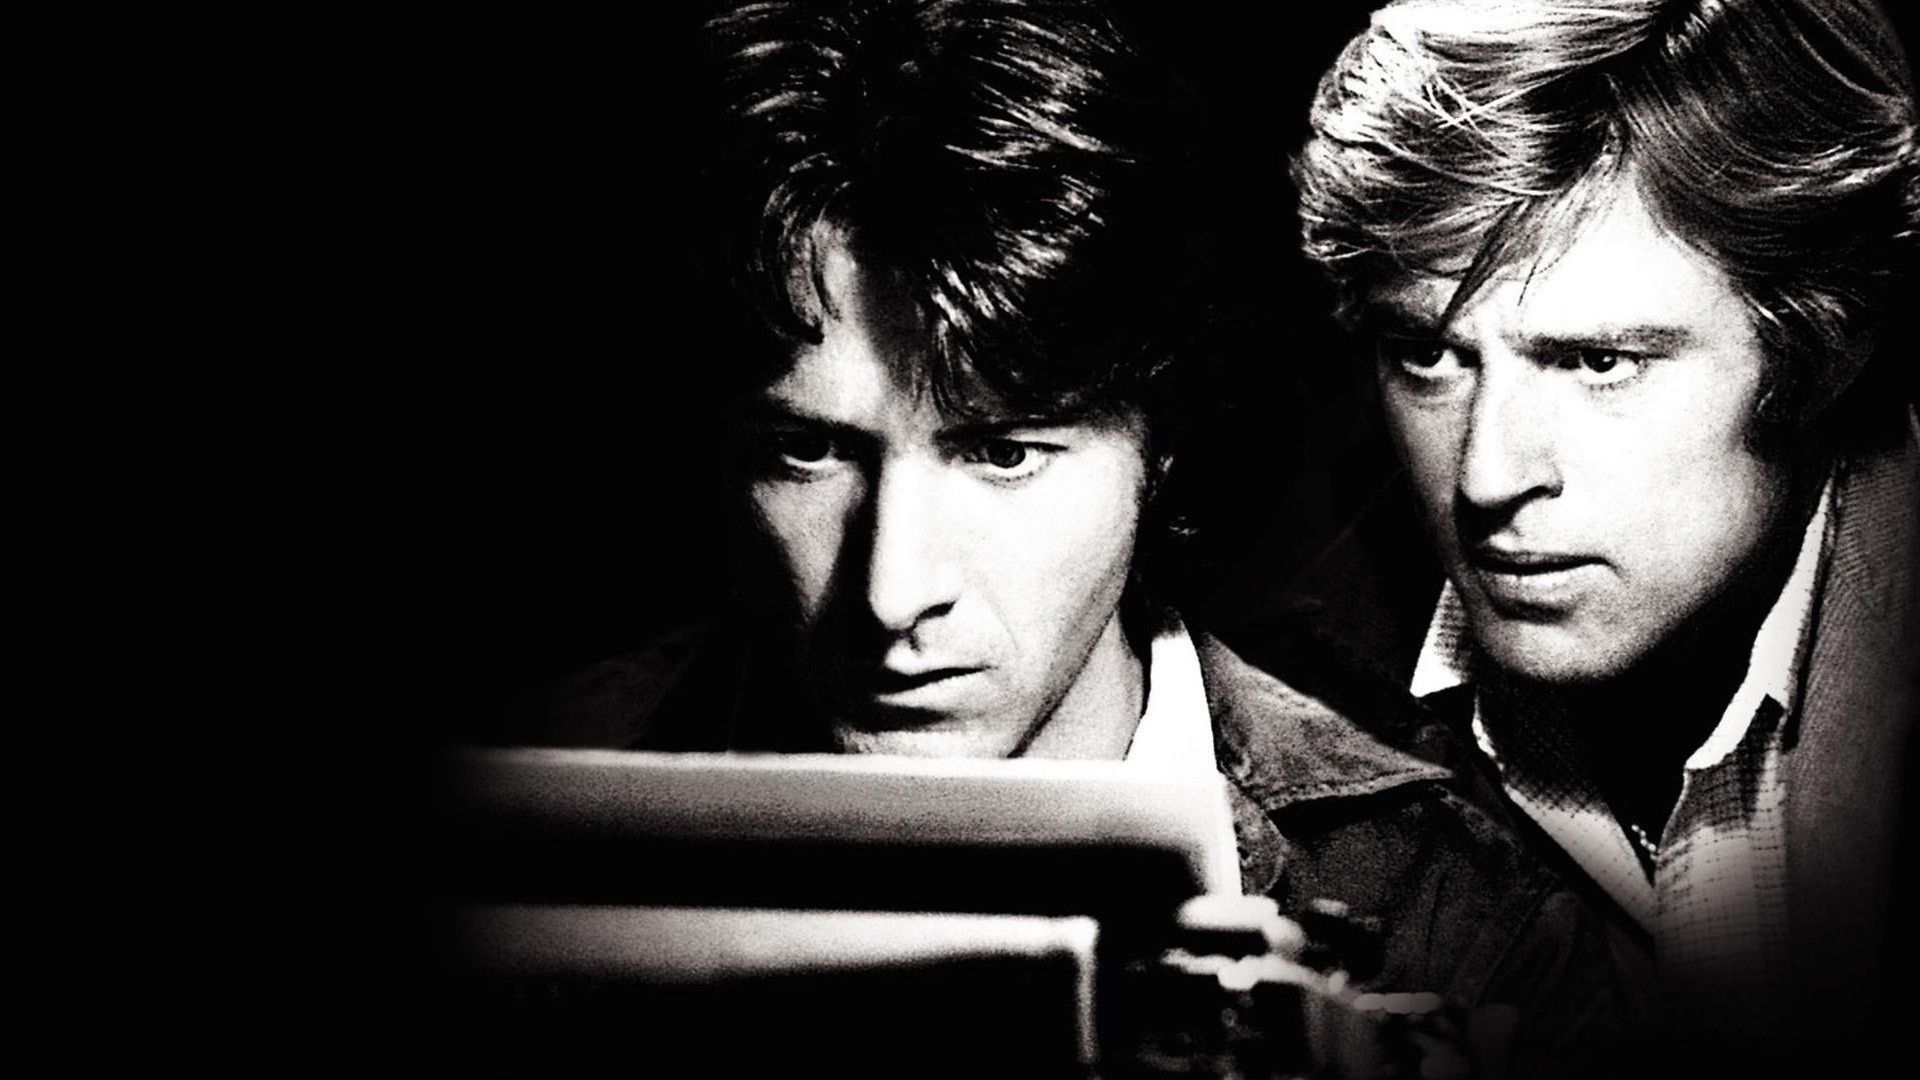 COMING: ALL THE PRESIDENT'S MEN, THE DOCUMENTARY